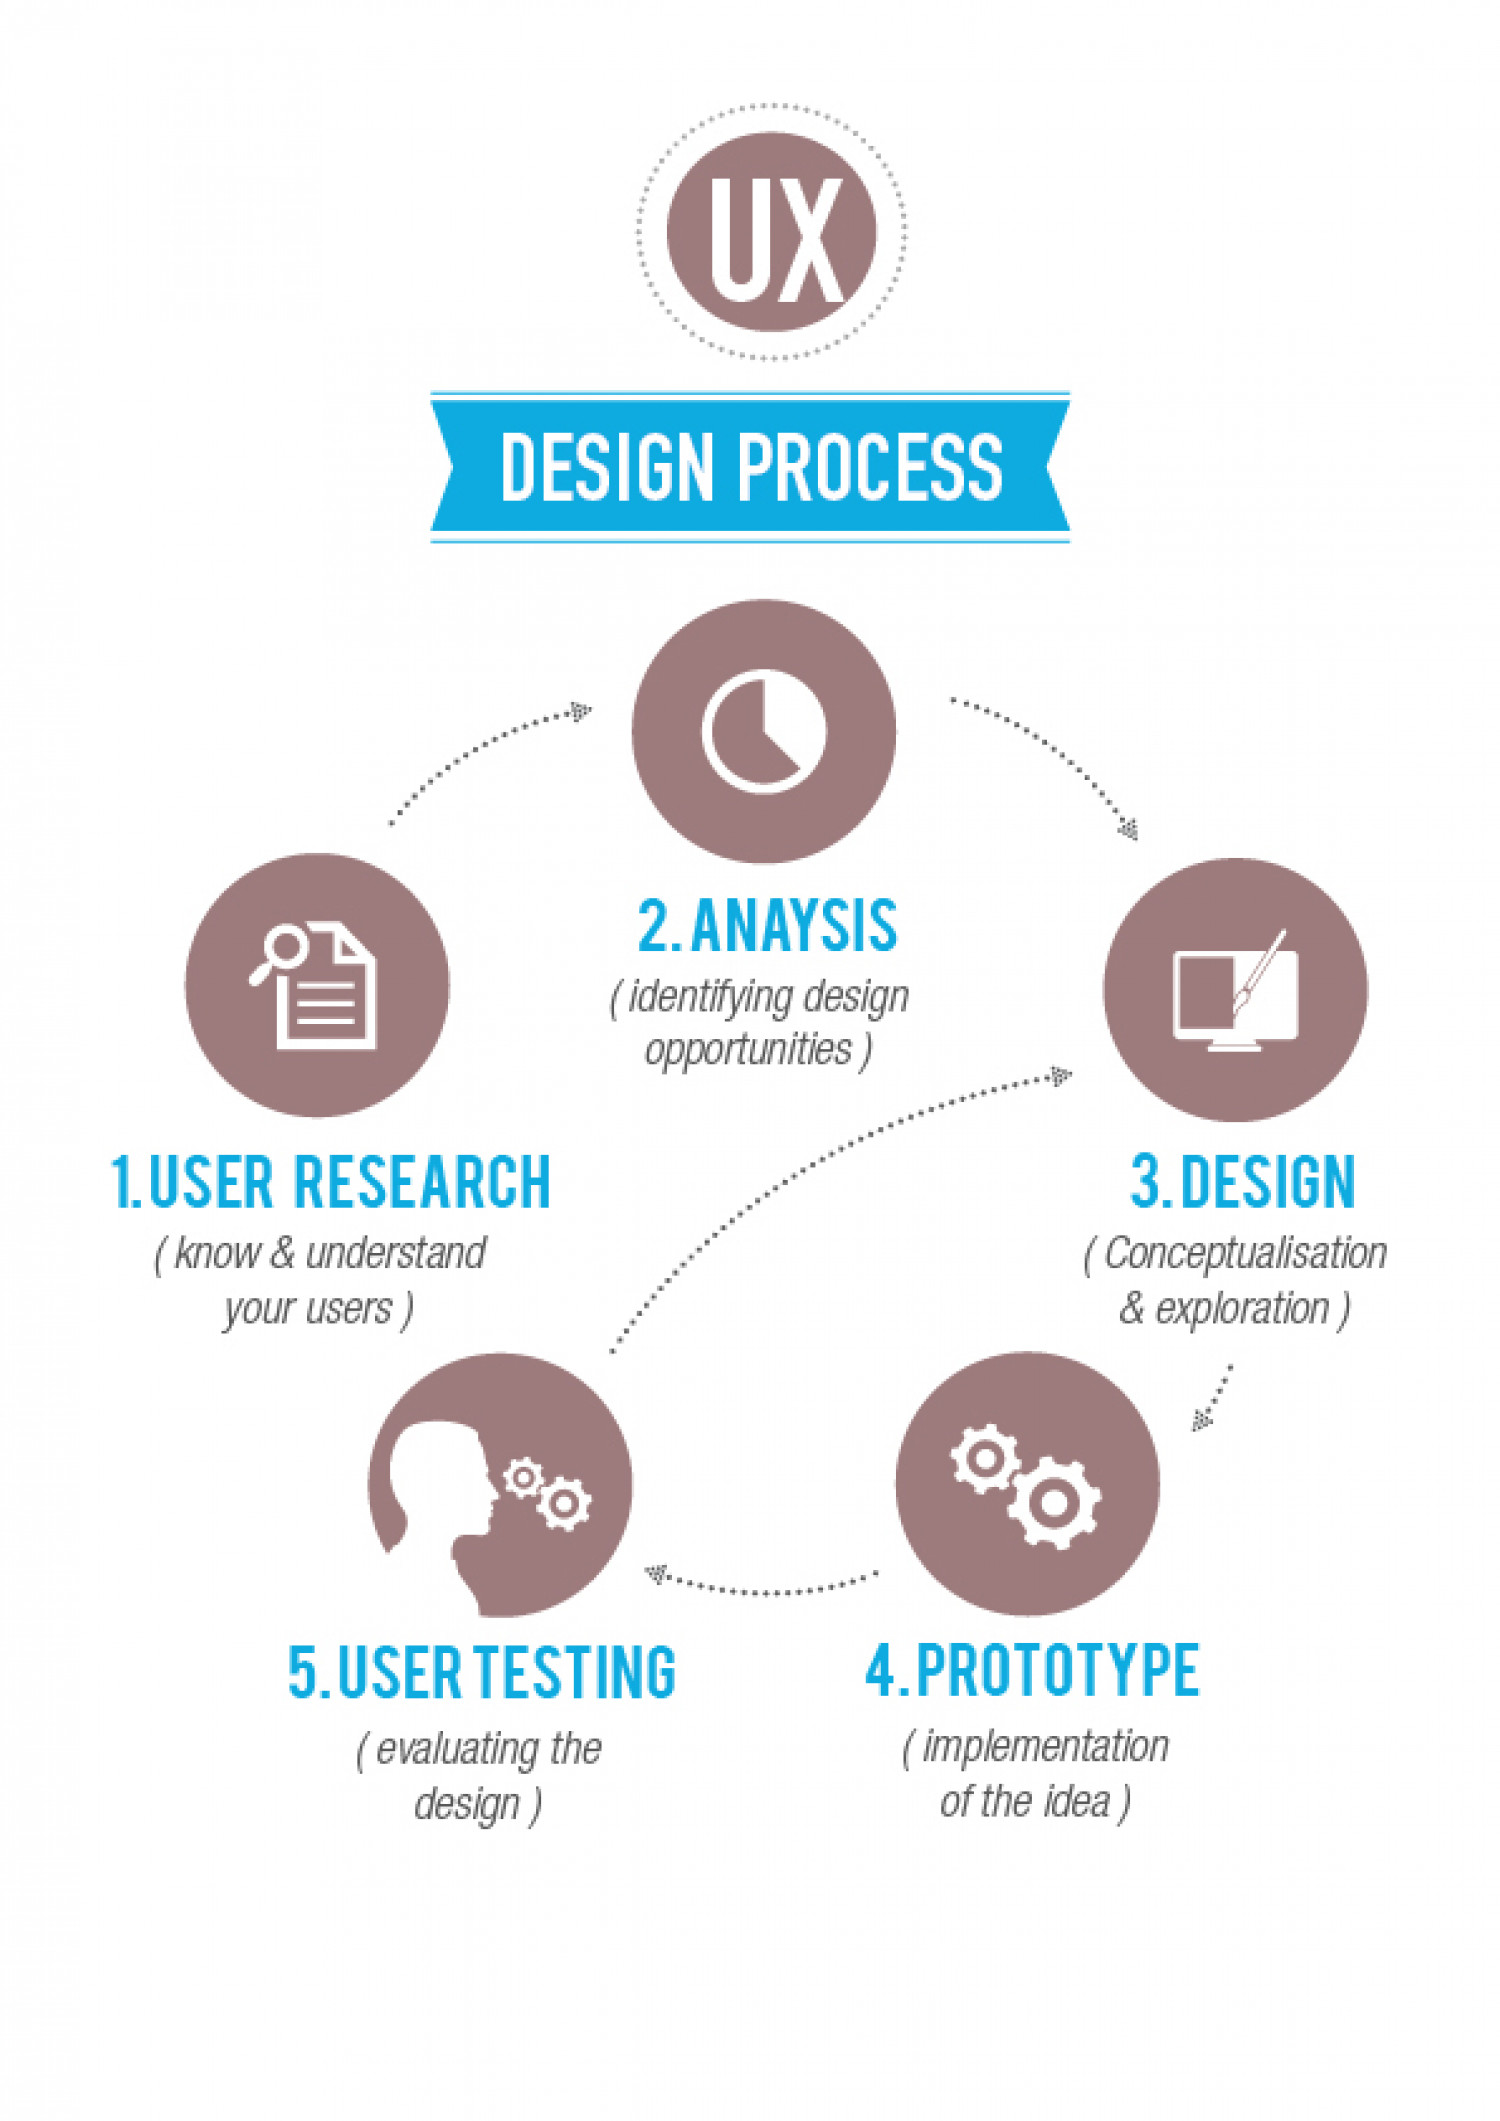 UX Design Process Infographic